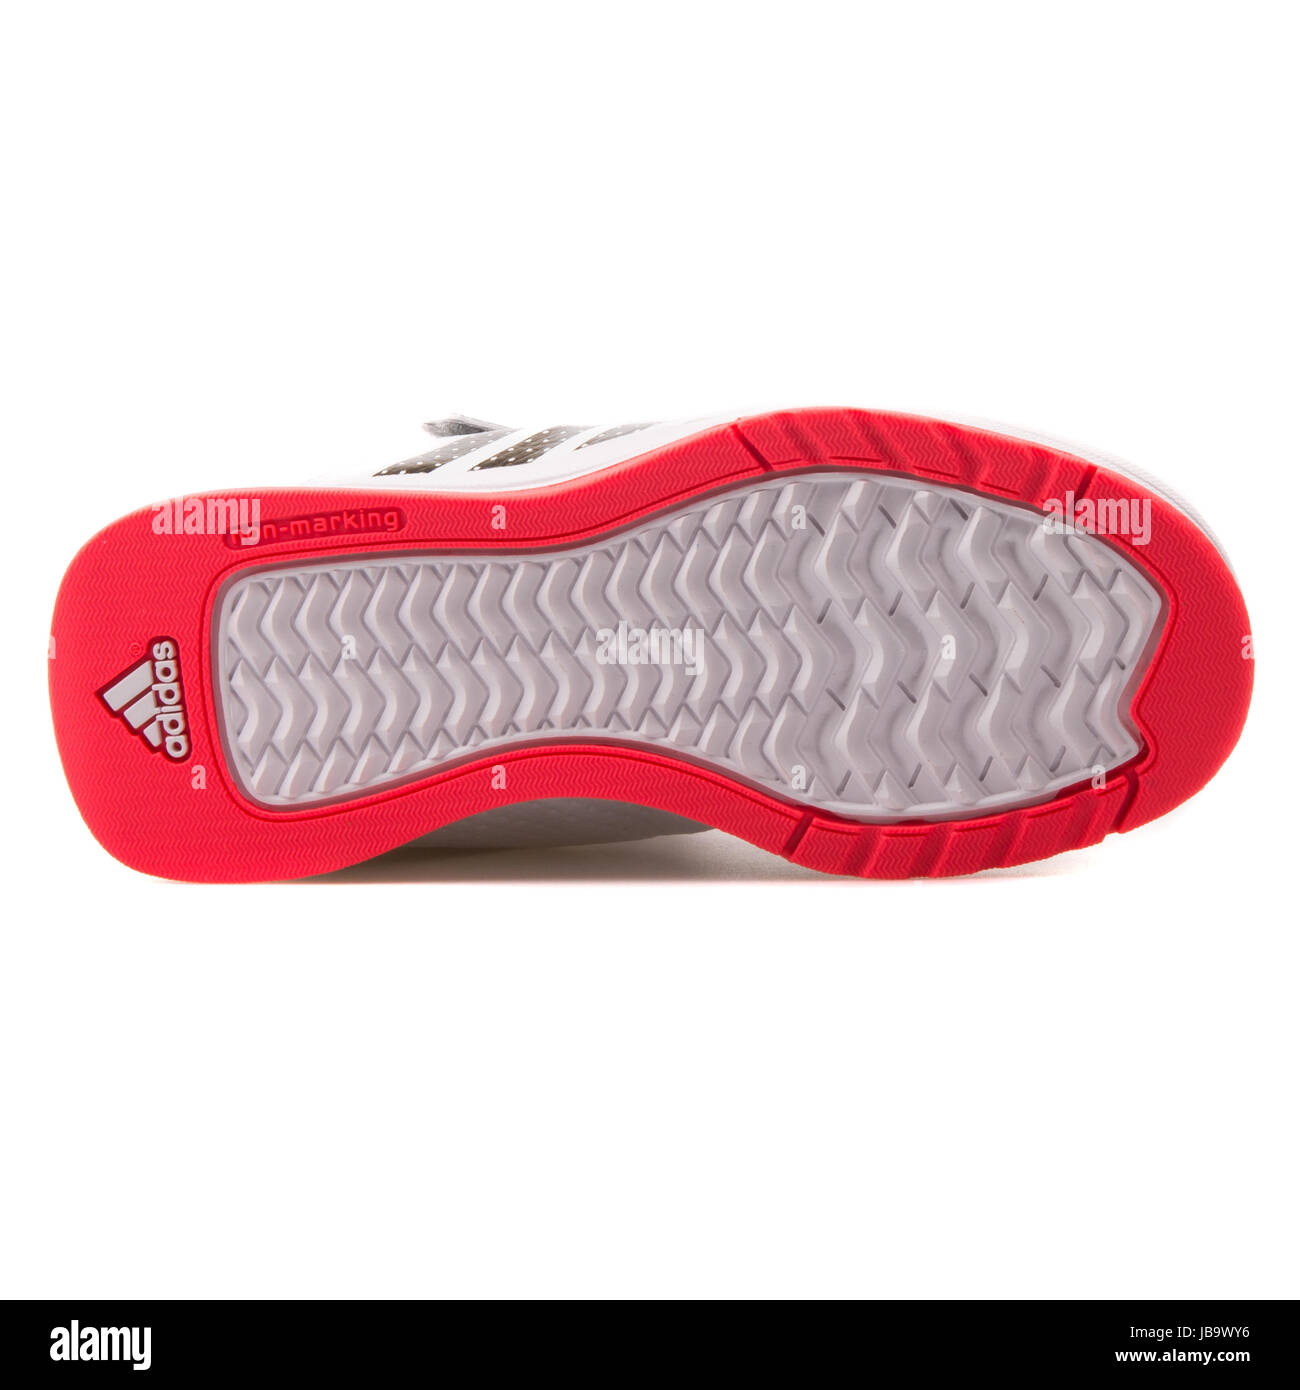 Adidas Jan BS 2 Mid C White, Grey and Red Kids Sports Shoes